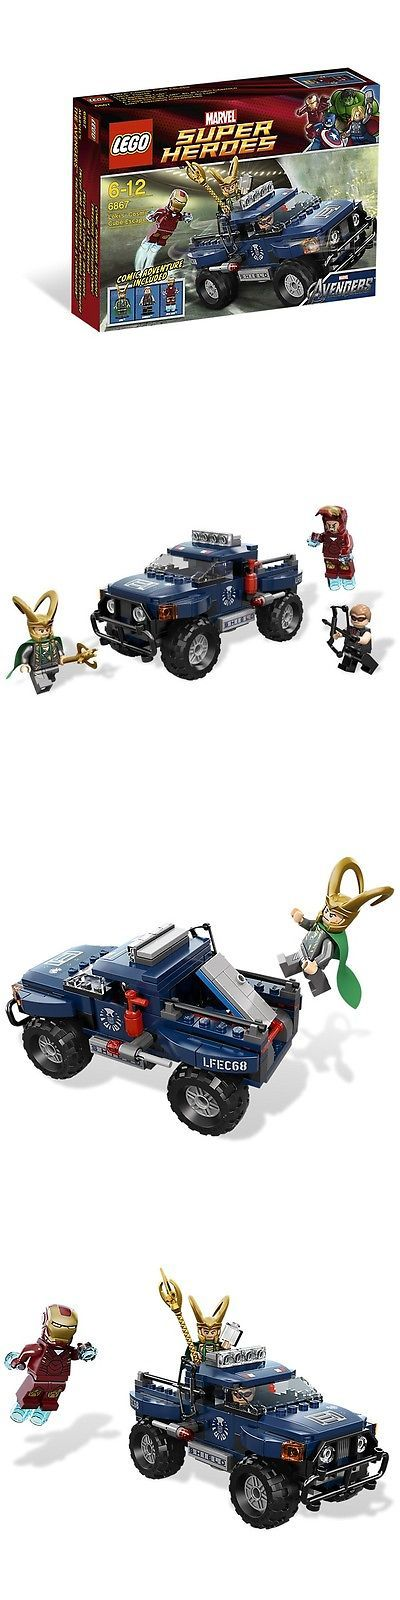 Mixed Lots 183451: Lego Marvel Super Heroes Loki S Cosmic Cube Escape Set 6867 New In Box -> BUY IT NOW ONLY: $47.45 on eBay!